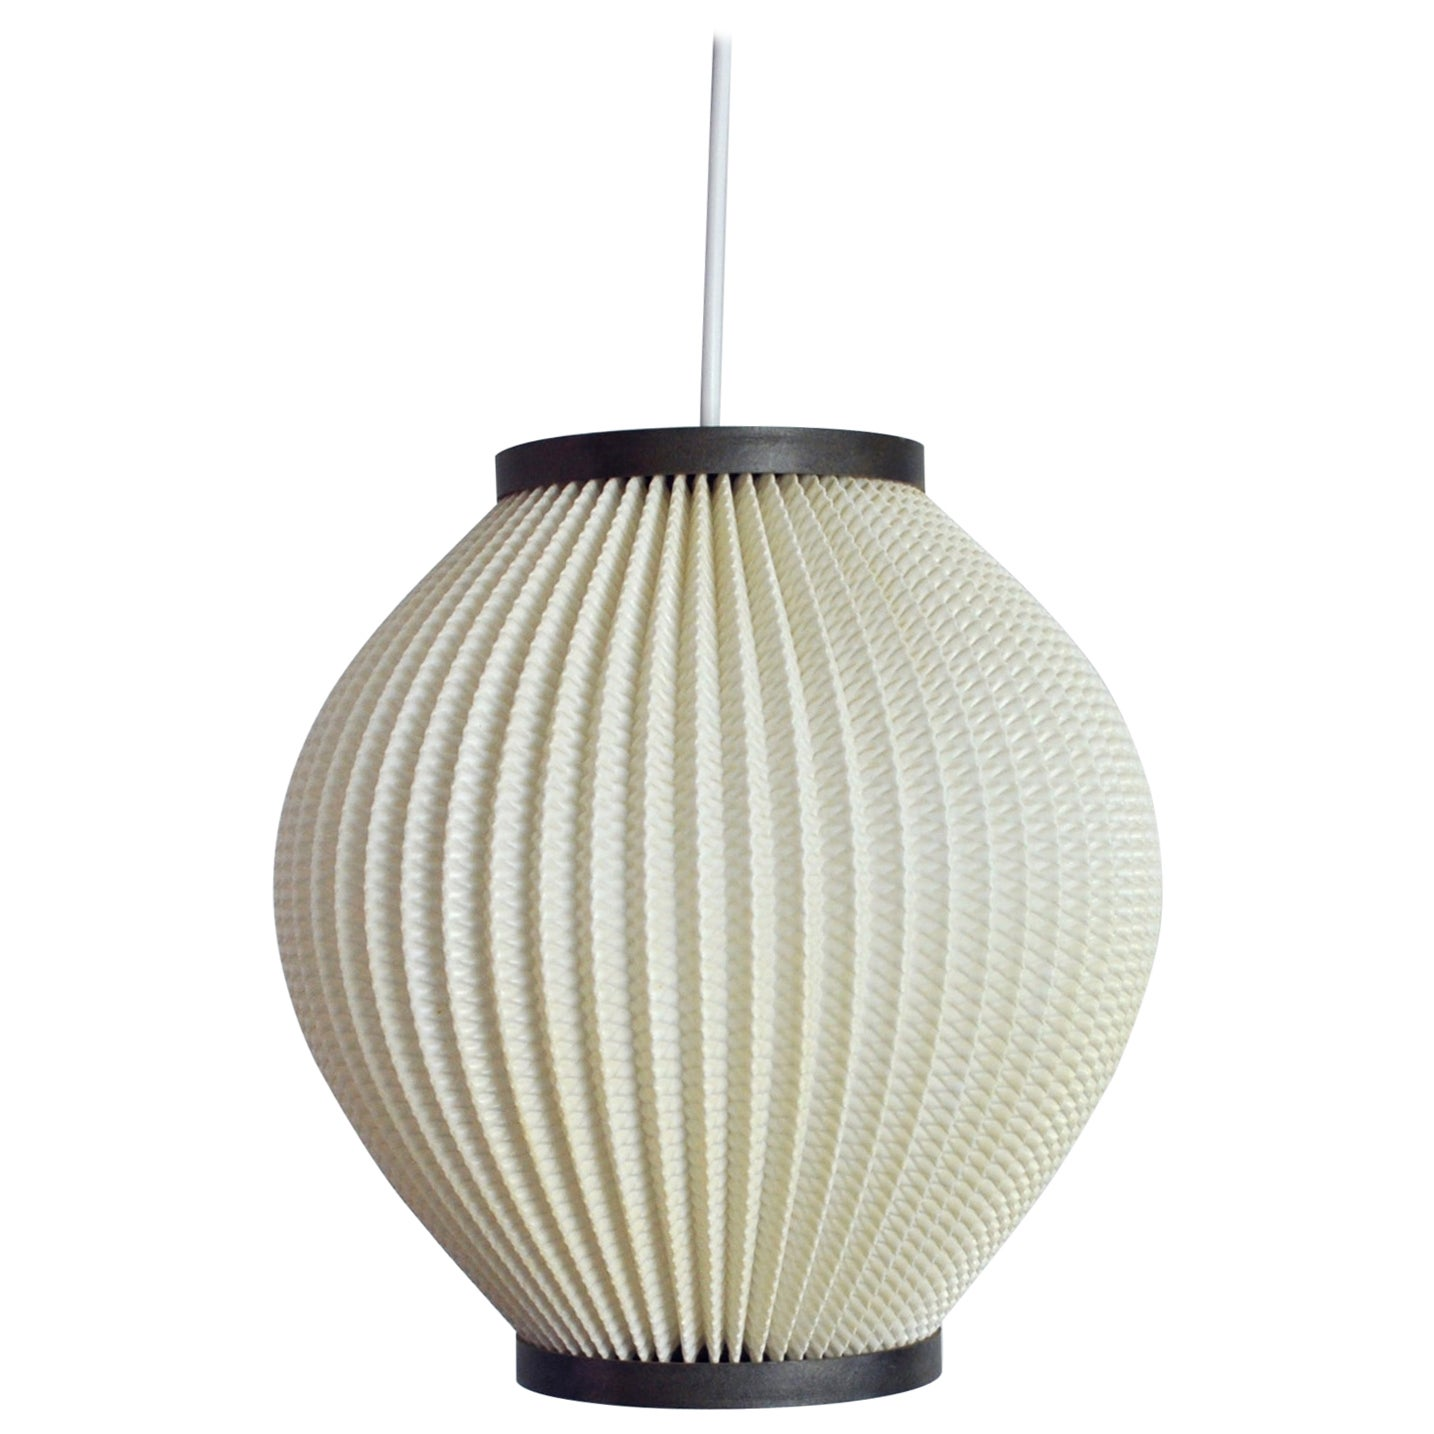 Danish Modern Pleated Pendant by Hoyrup Light, 1960s